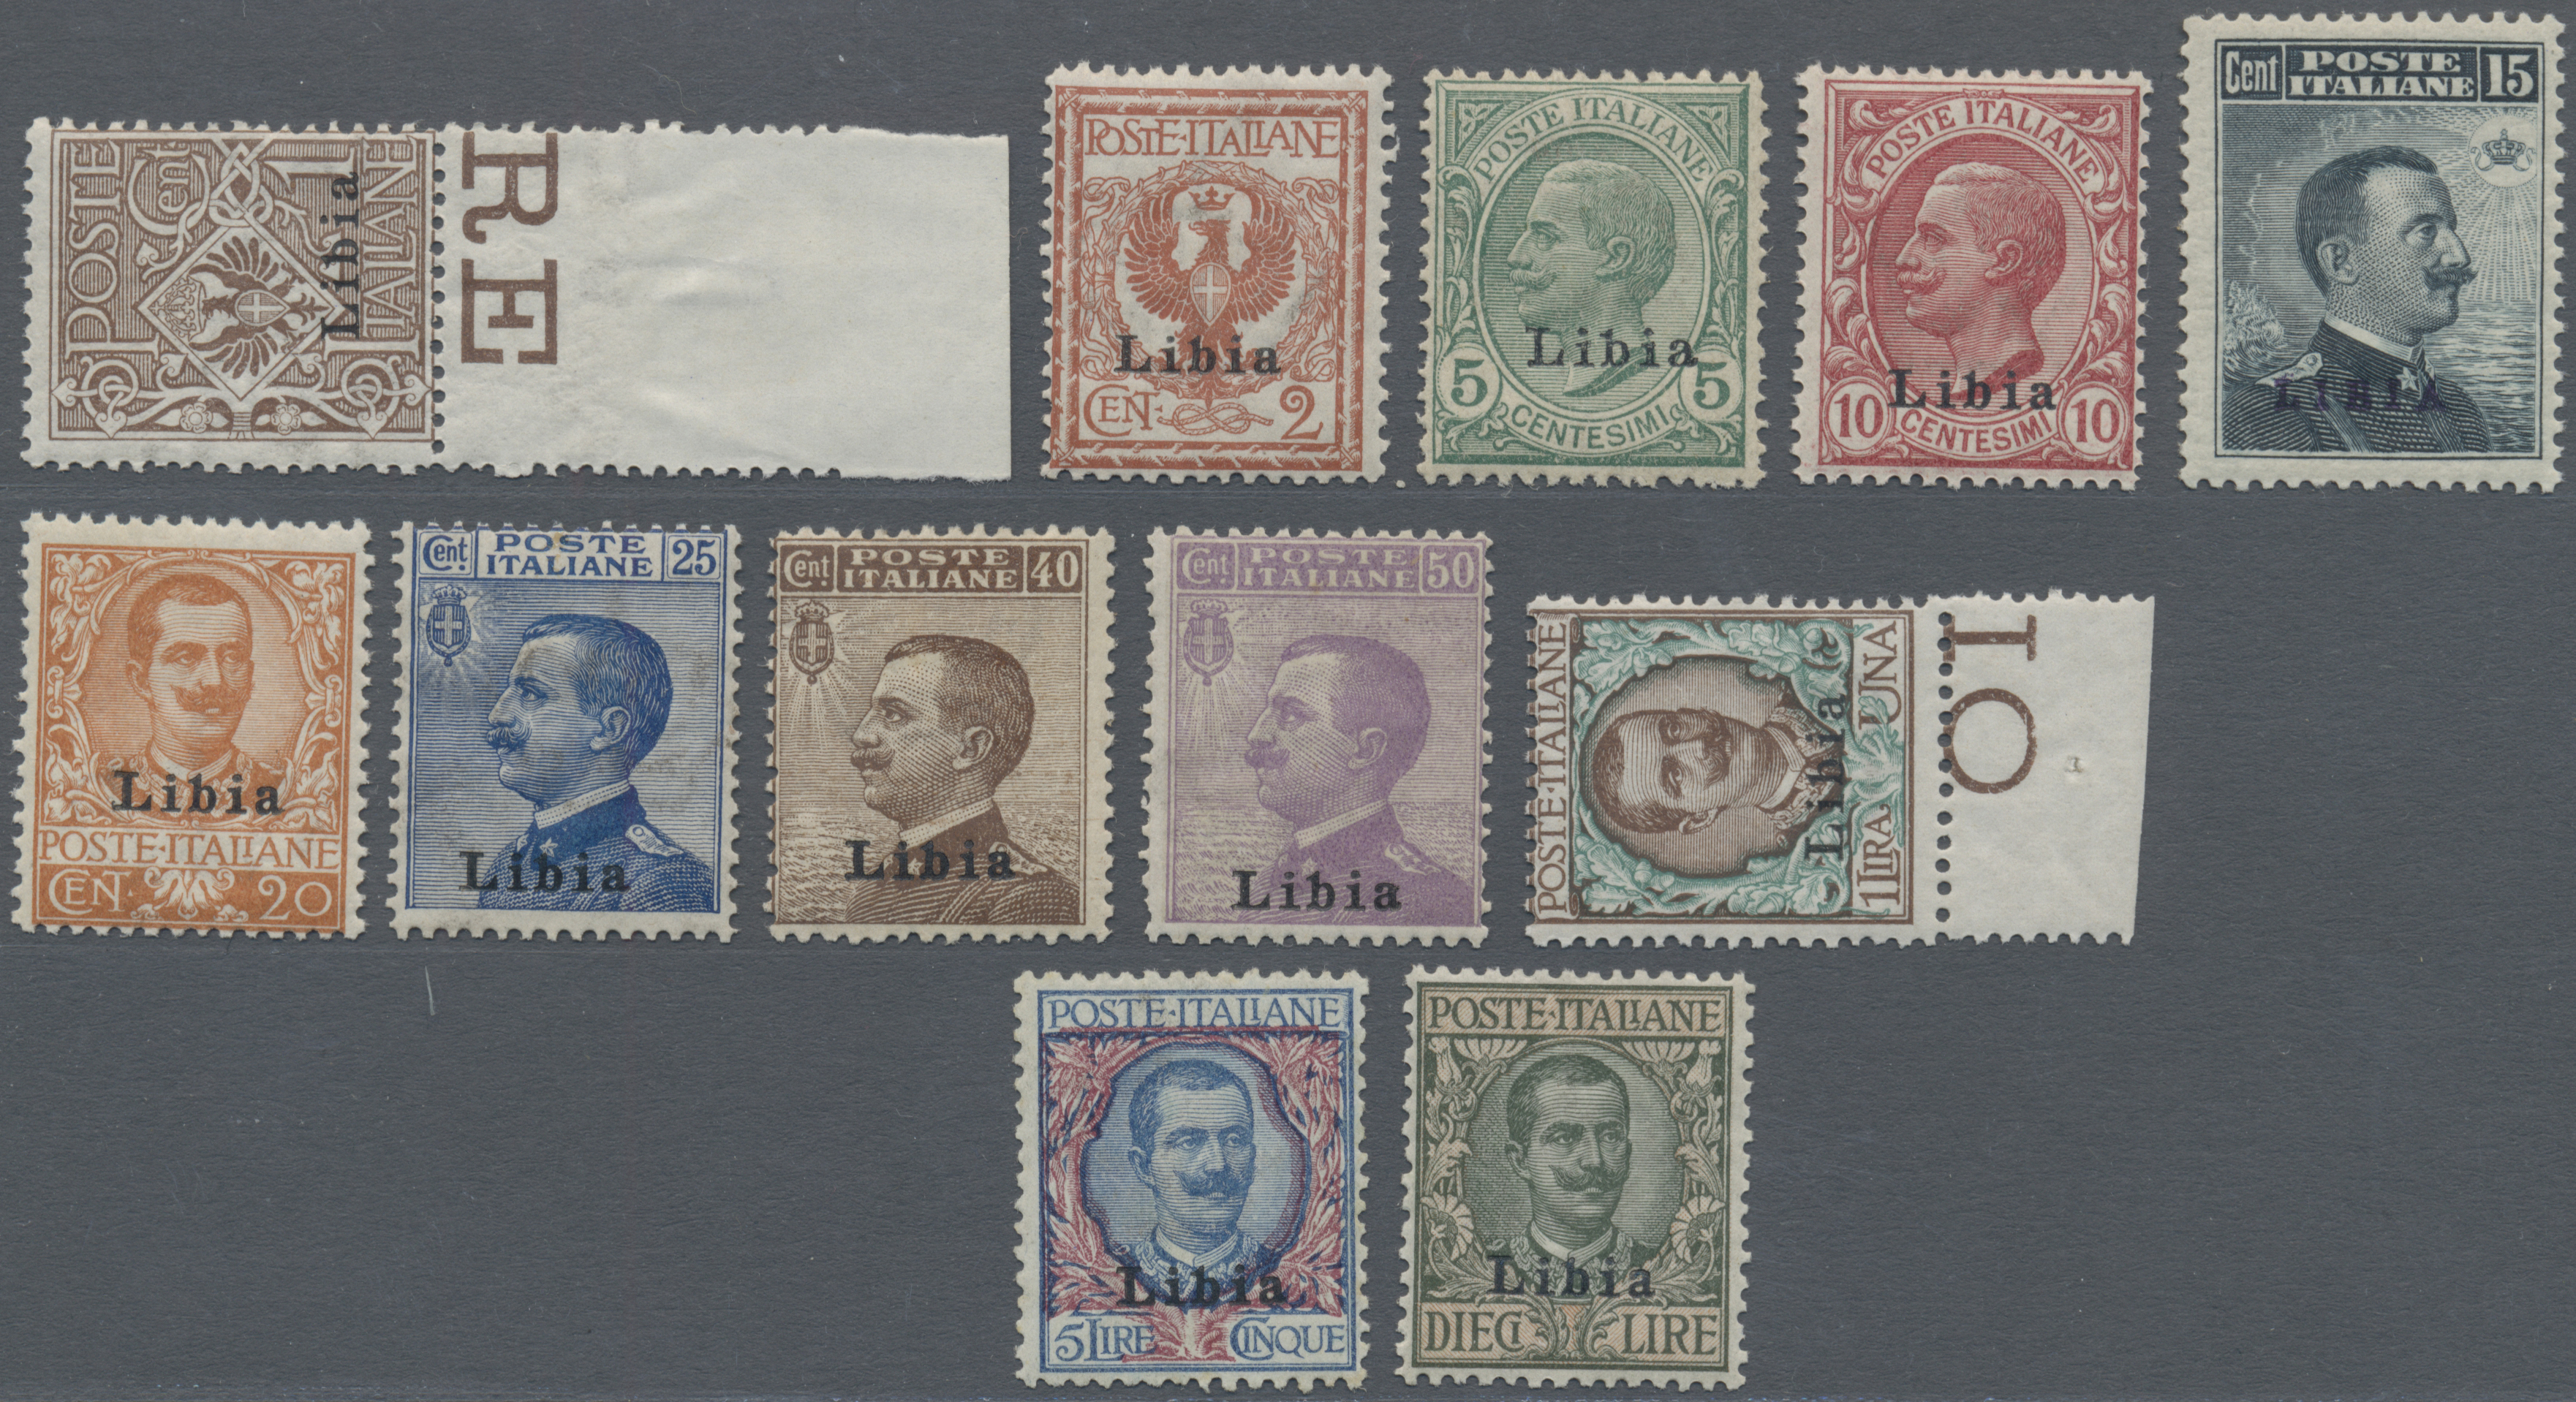 Lot 1058 - italienisch-libyen  -  Auktionshaus Christoph Gärtner GmbH & Co. KG Auction #41 Special auction part one